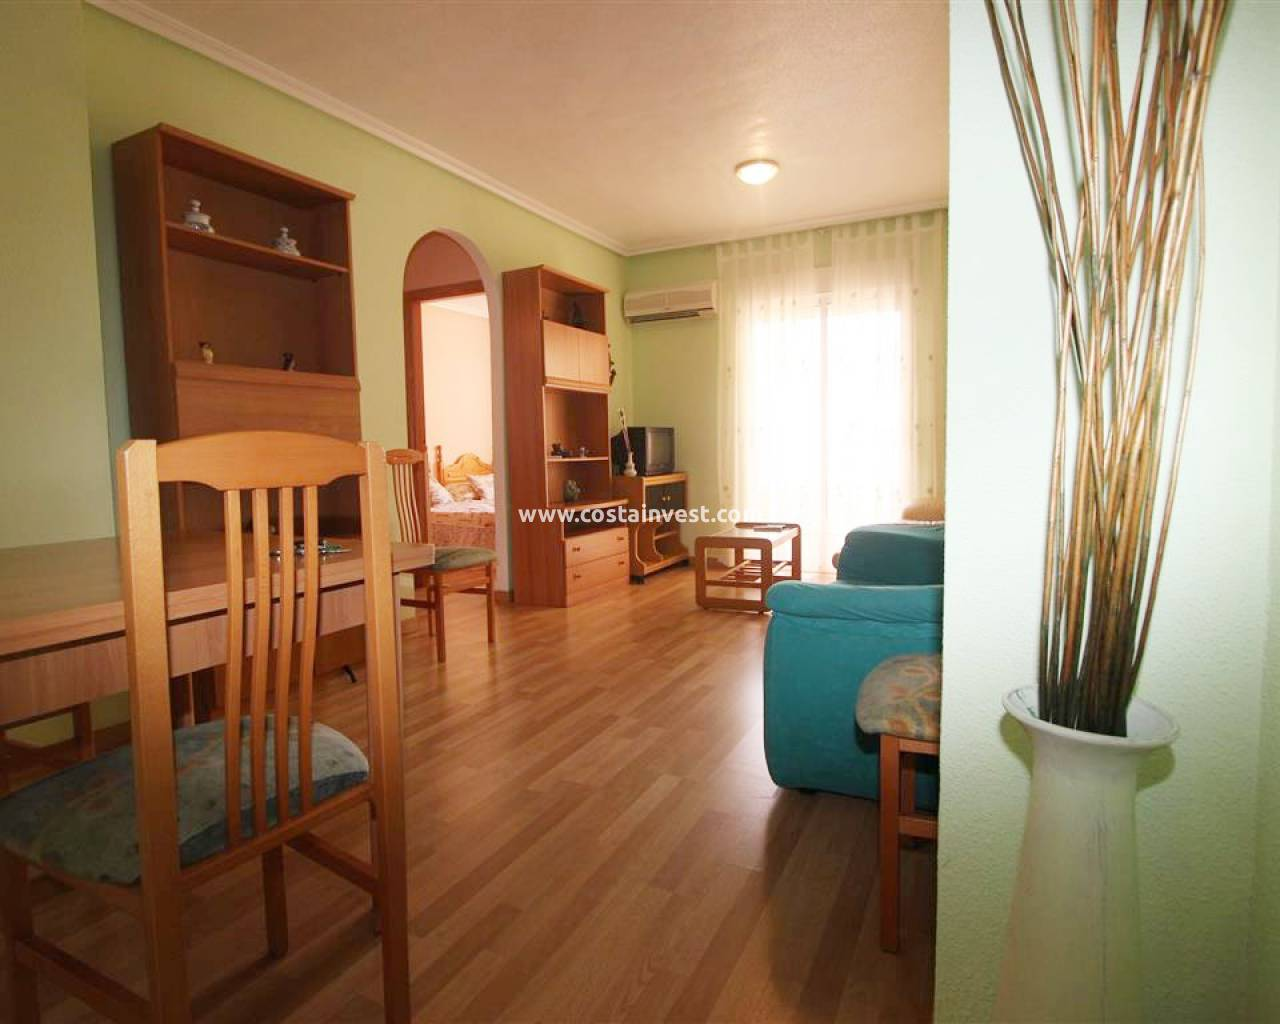 Rental - Apartment - Torrevieja